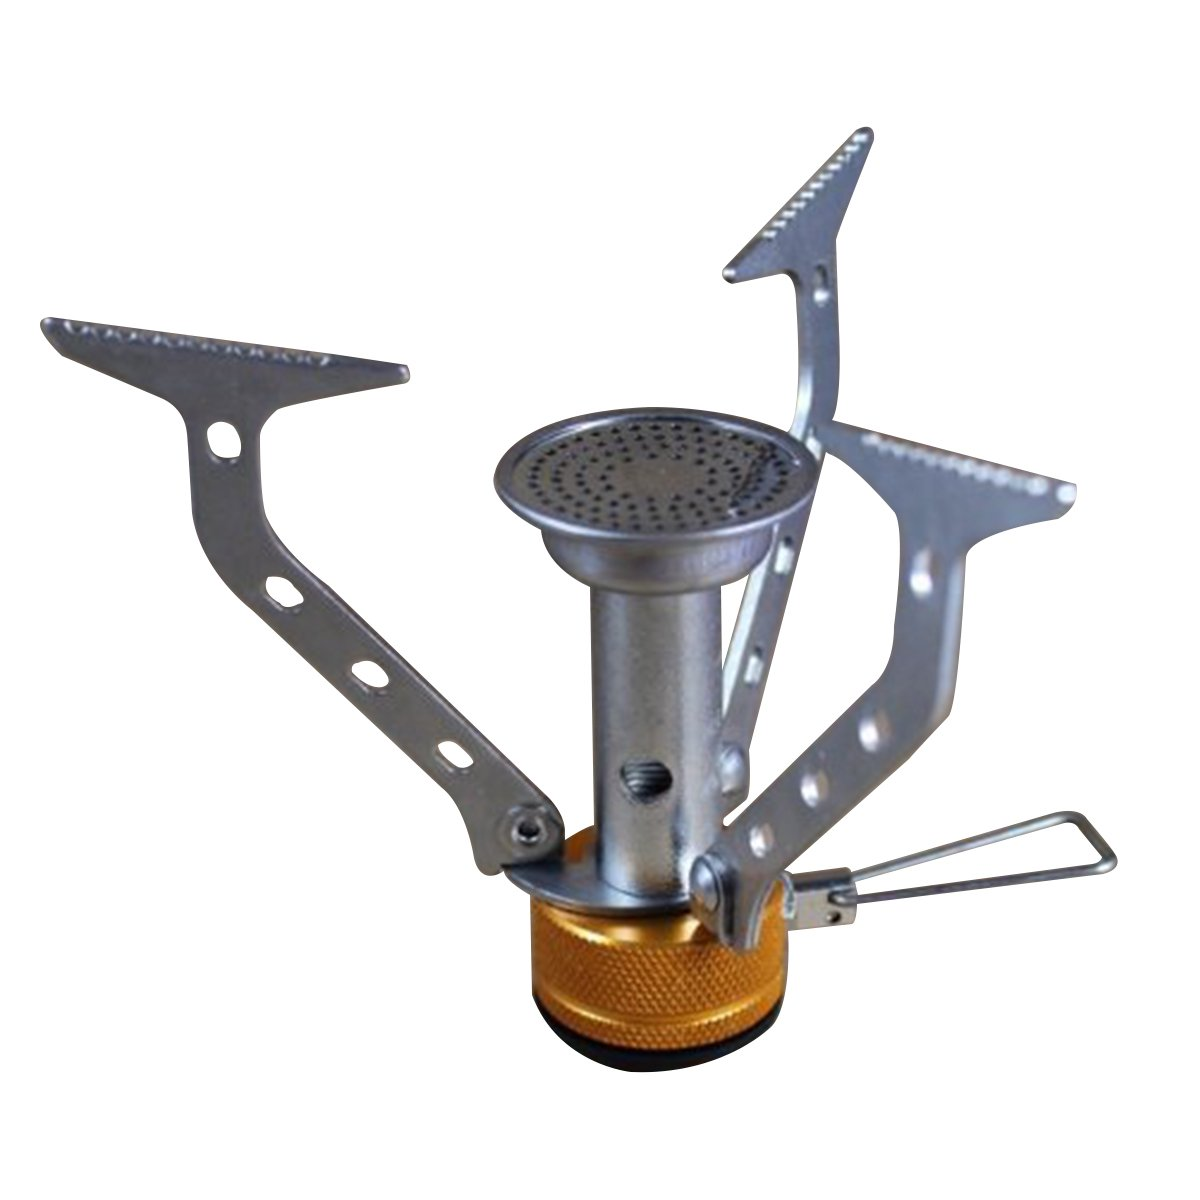 TopOne Backpacking Canister Rocket Camp Stove 3.9oz